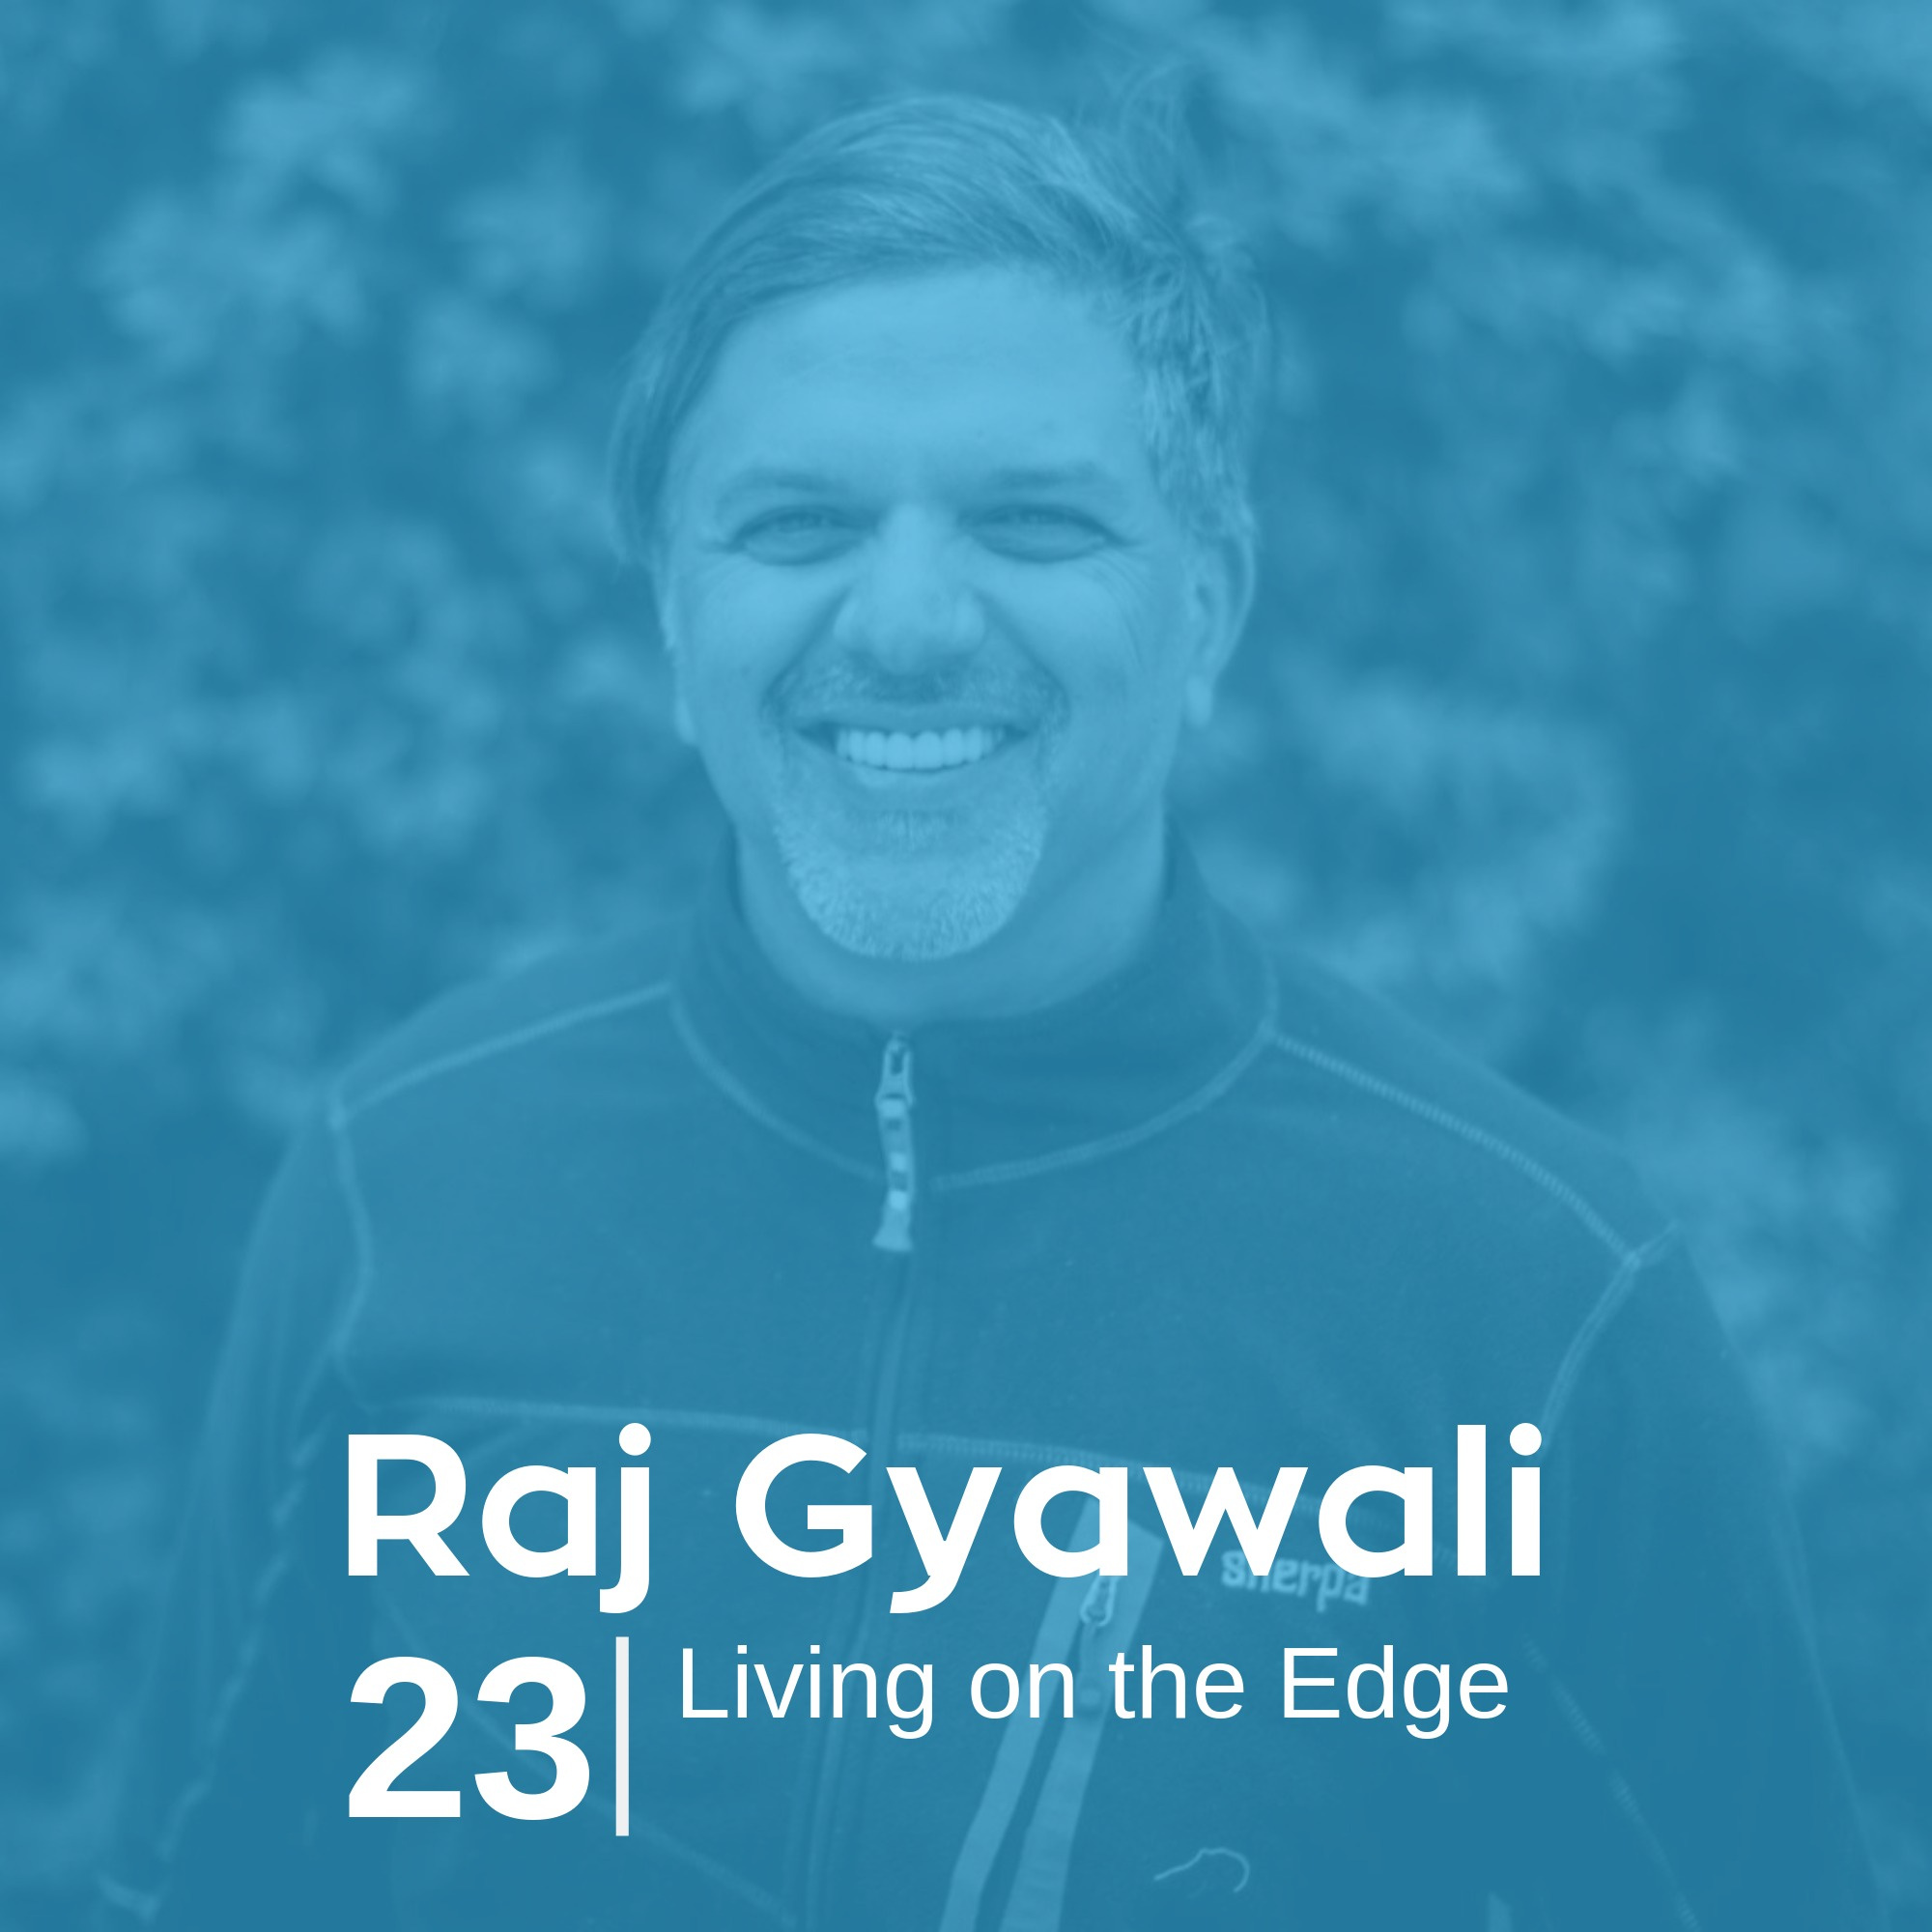 Ep 23. Raj Gyawali - Living on the Edge